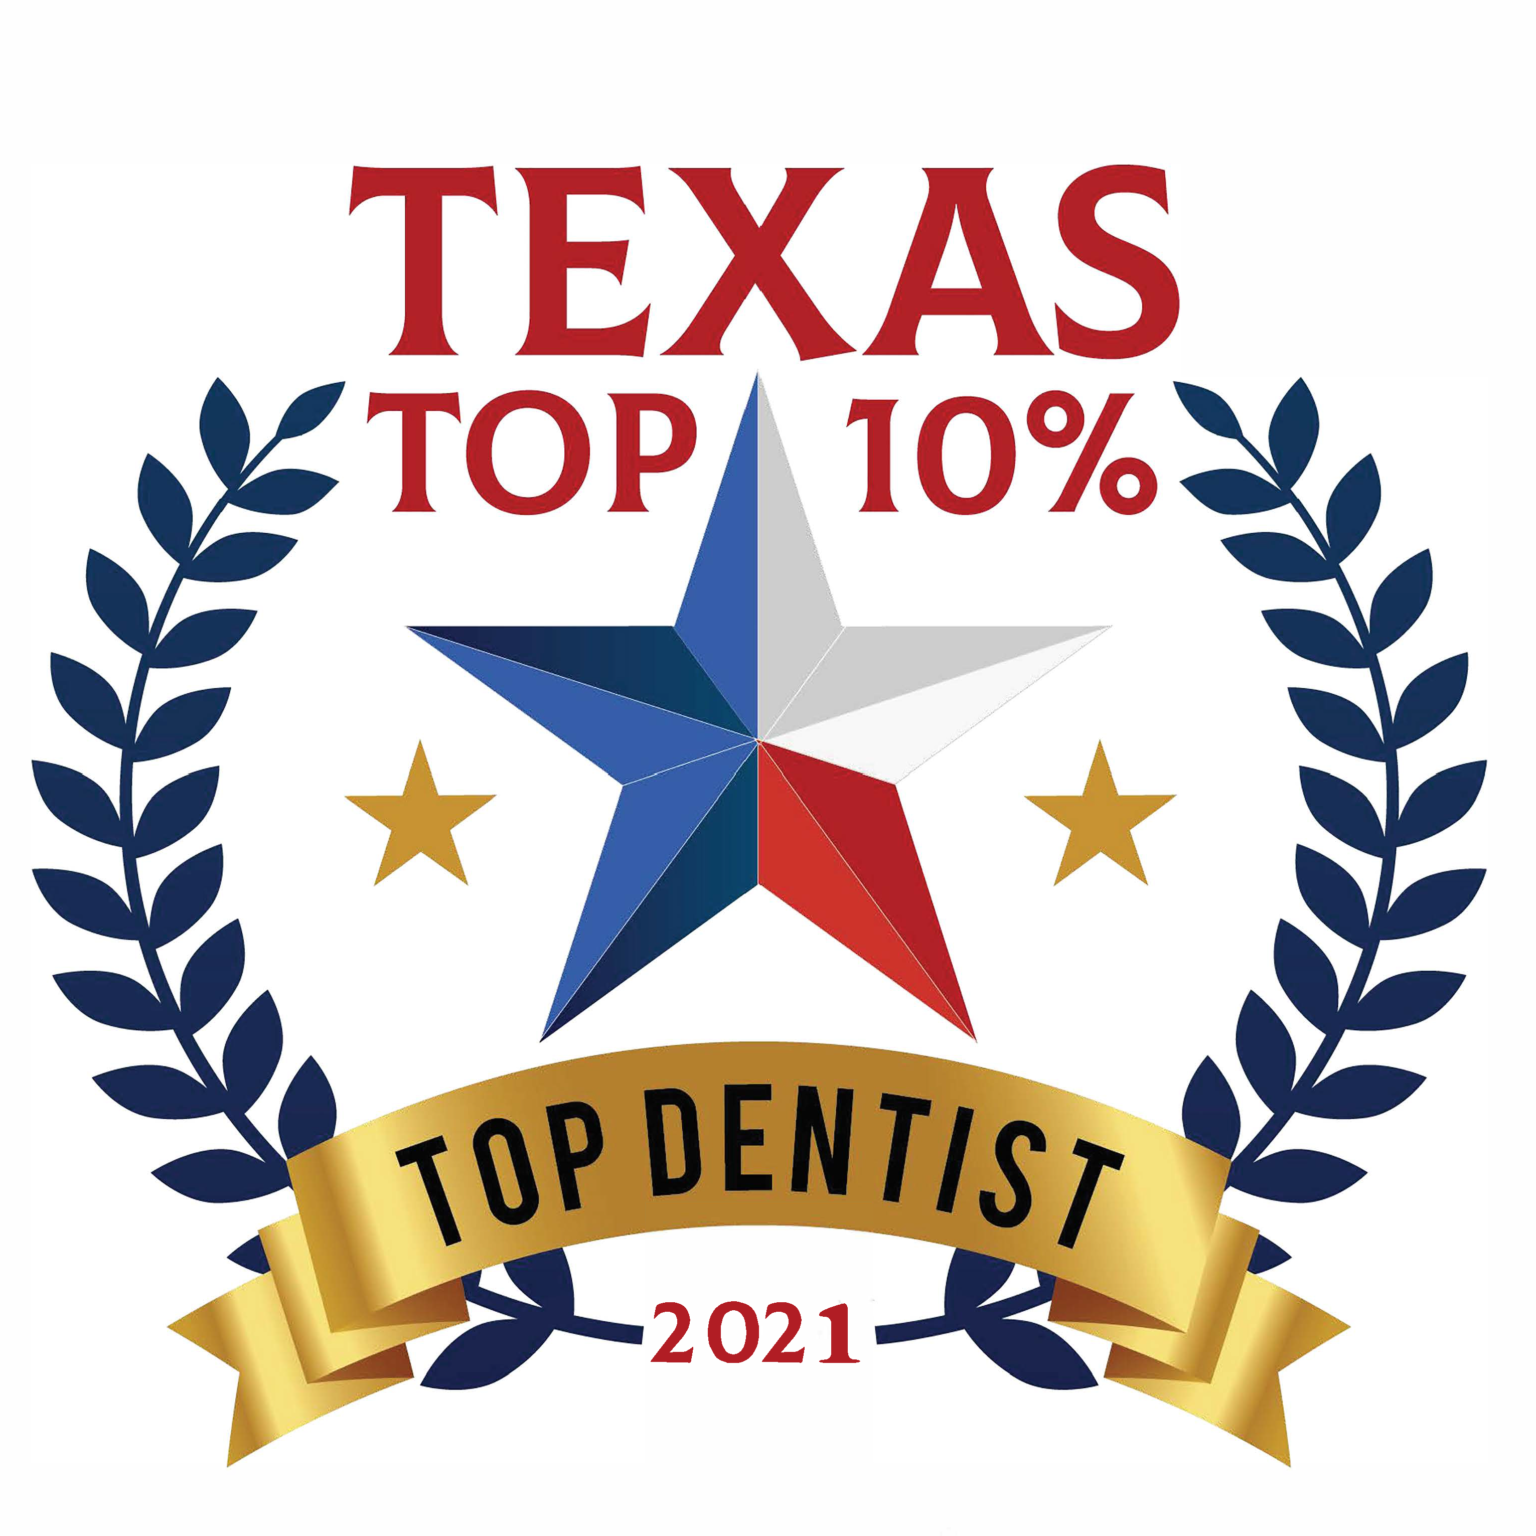 Top 10 Dentists in Texas